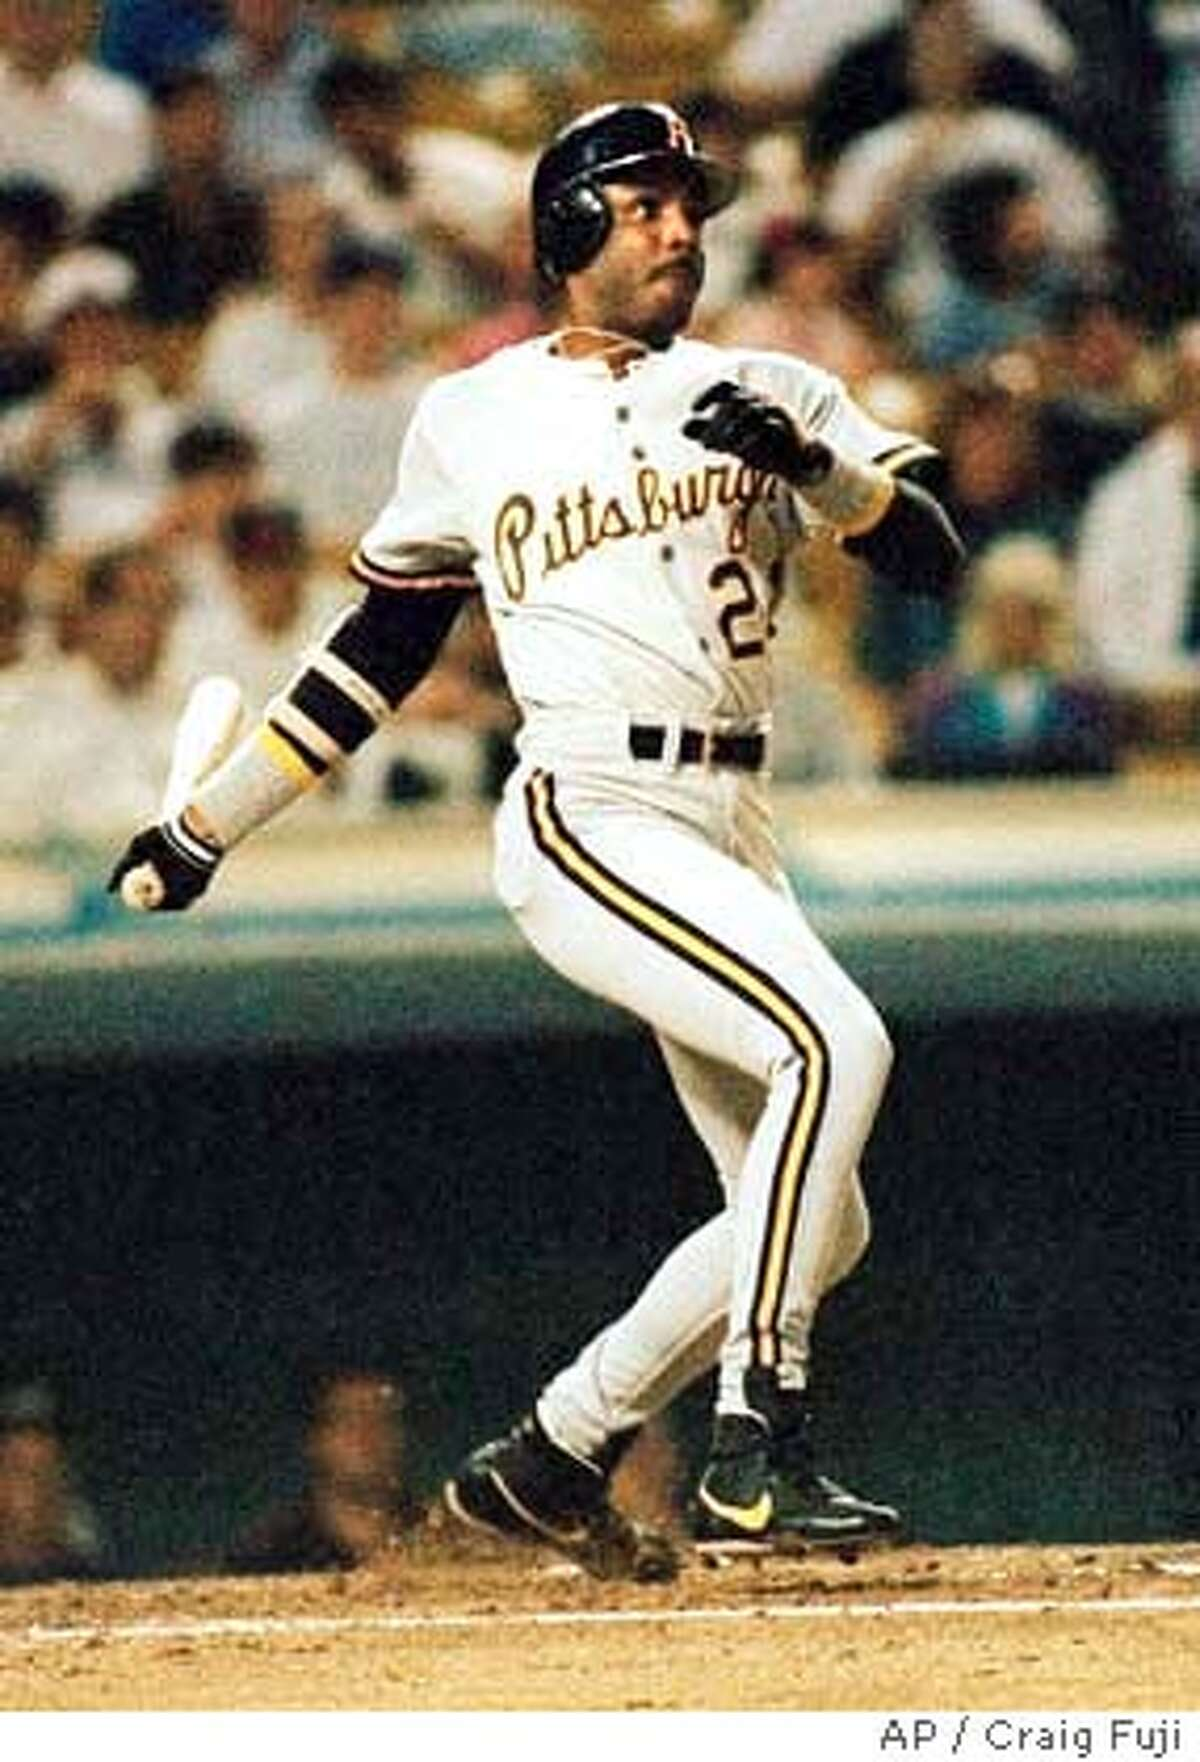 FILE--Pittsburgh Pirates' Barry Bonds hits against the Los Angeles Dodgers in this August. 25, 1992 file photo. Bonds is looking for affection, not money or trophies. He's likely to wind up with all three. ``I just want to be wanted,'' he said Monday, Nov. 19, 2001 after becoming the first player to win four Most Valuable Player Awards. (AP Photo/Craig Fuji)